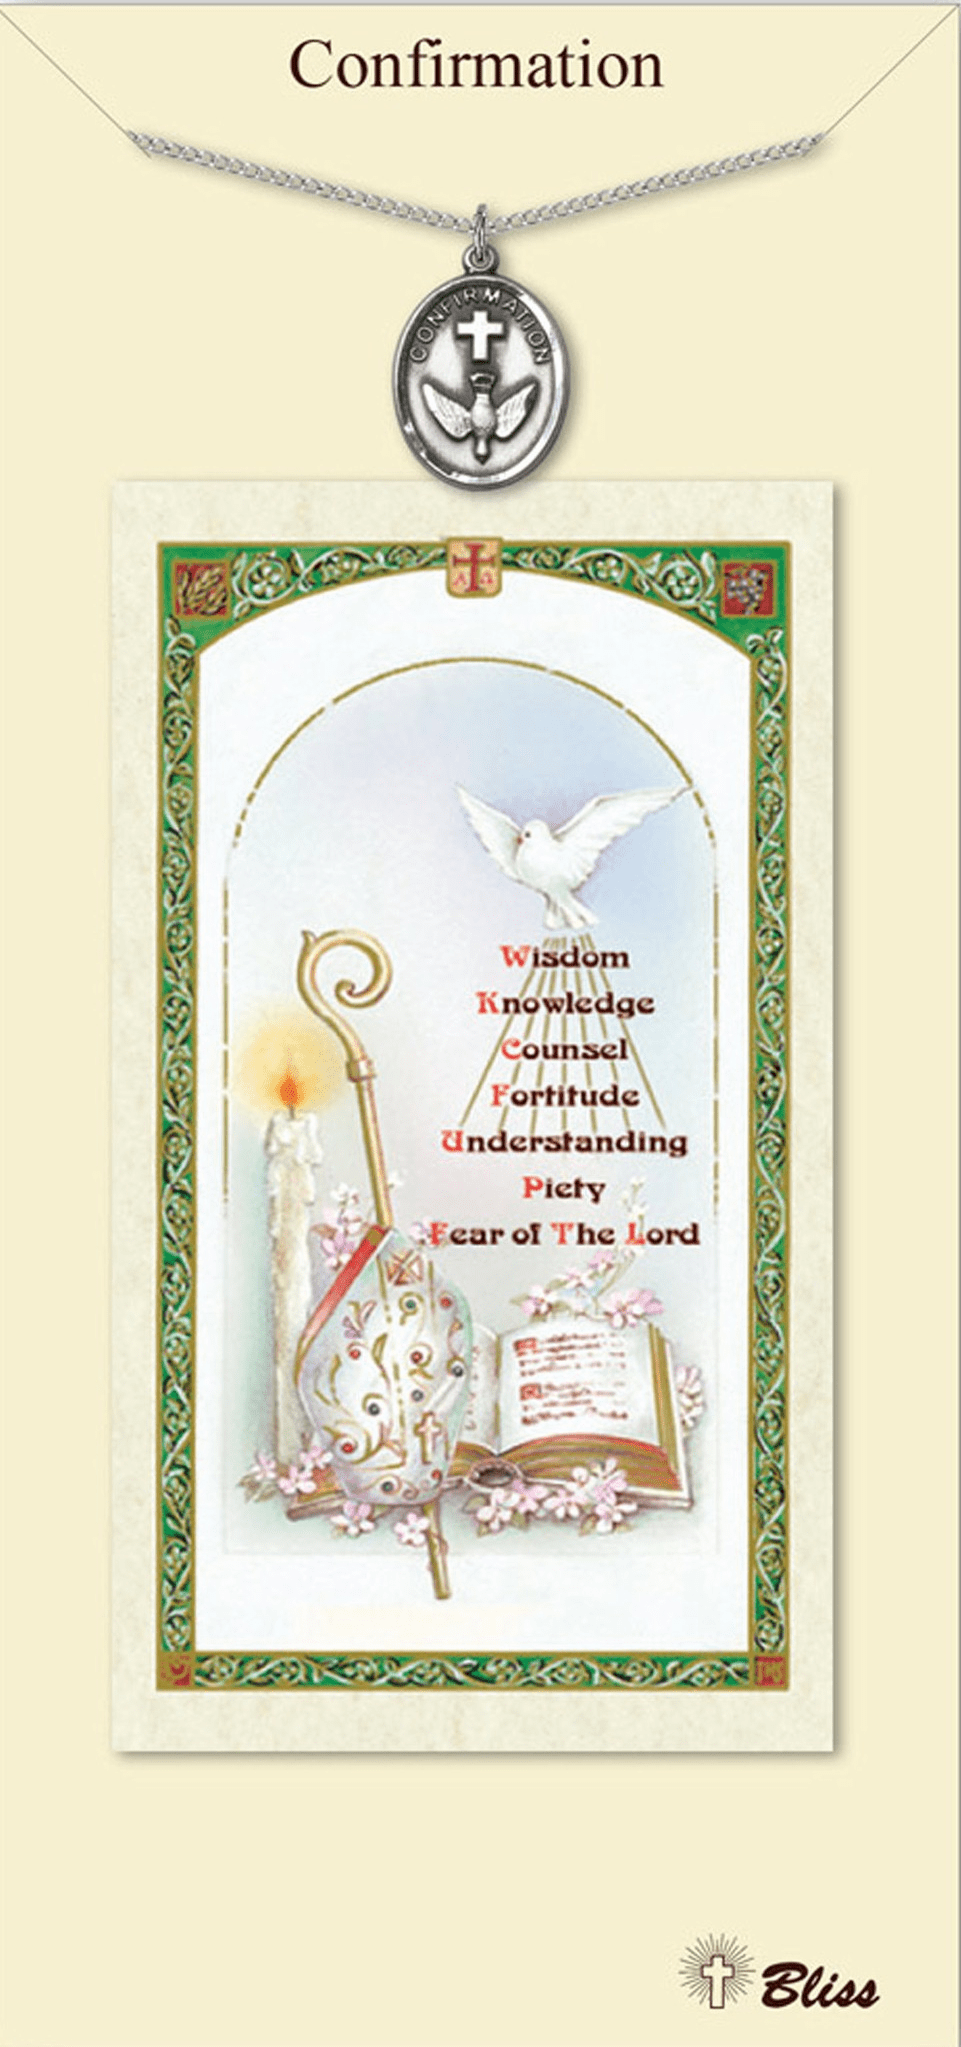 Confirmation Prayer Card & Pendant Gift Set